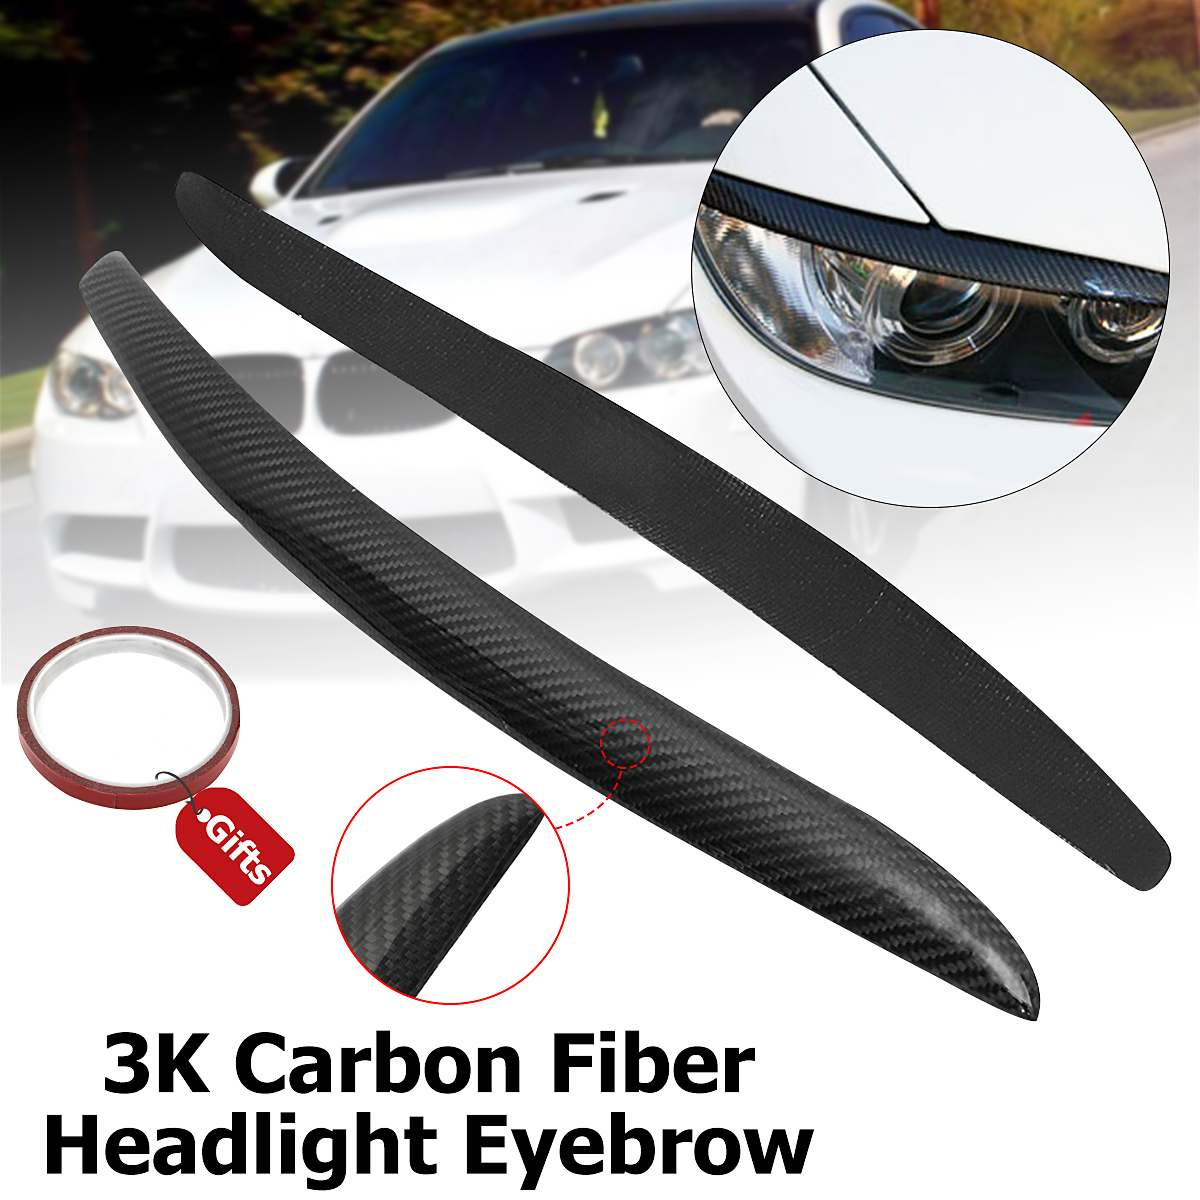 1 Pair of Carbon Fiber Side Rear View Mirror Cover Cap for 350Z Z33 2003-2008 Acouto Rearview Mirror Cover